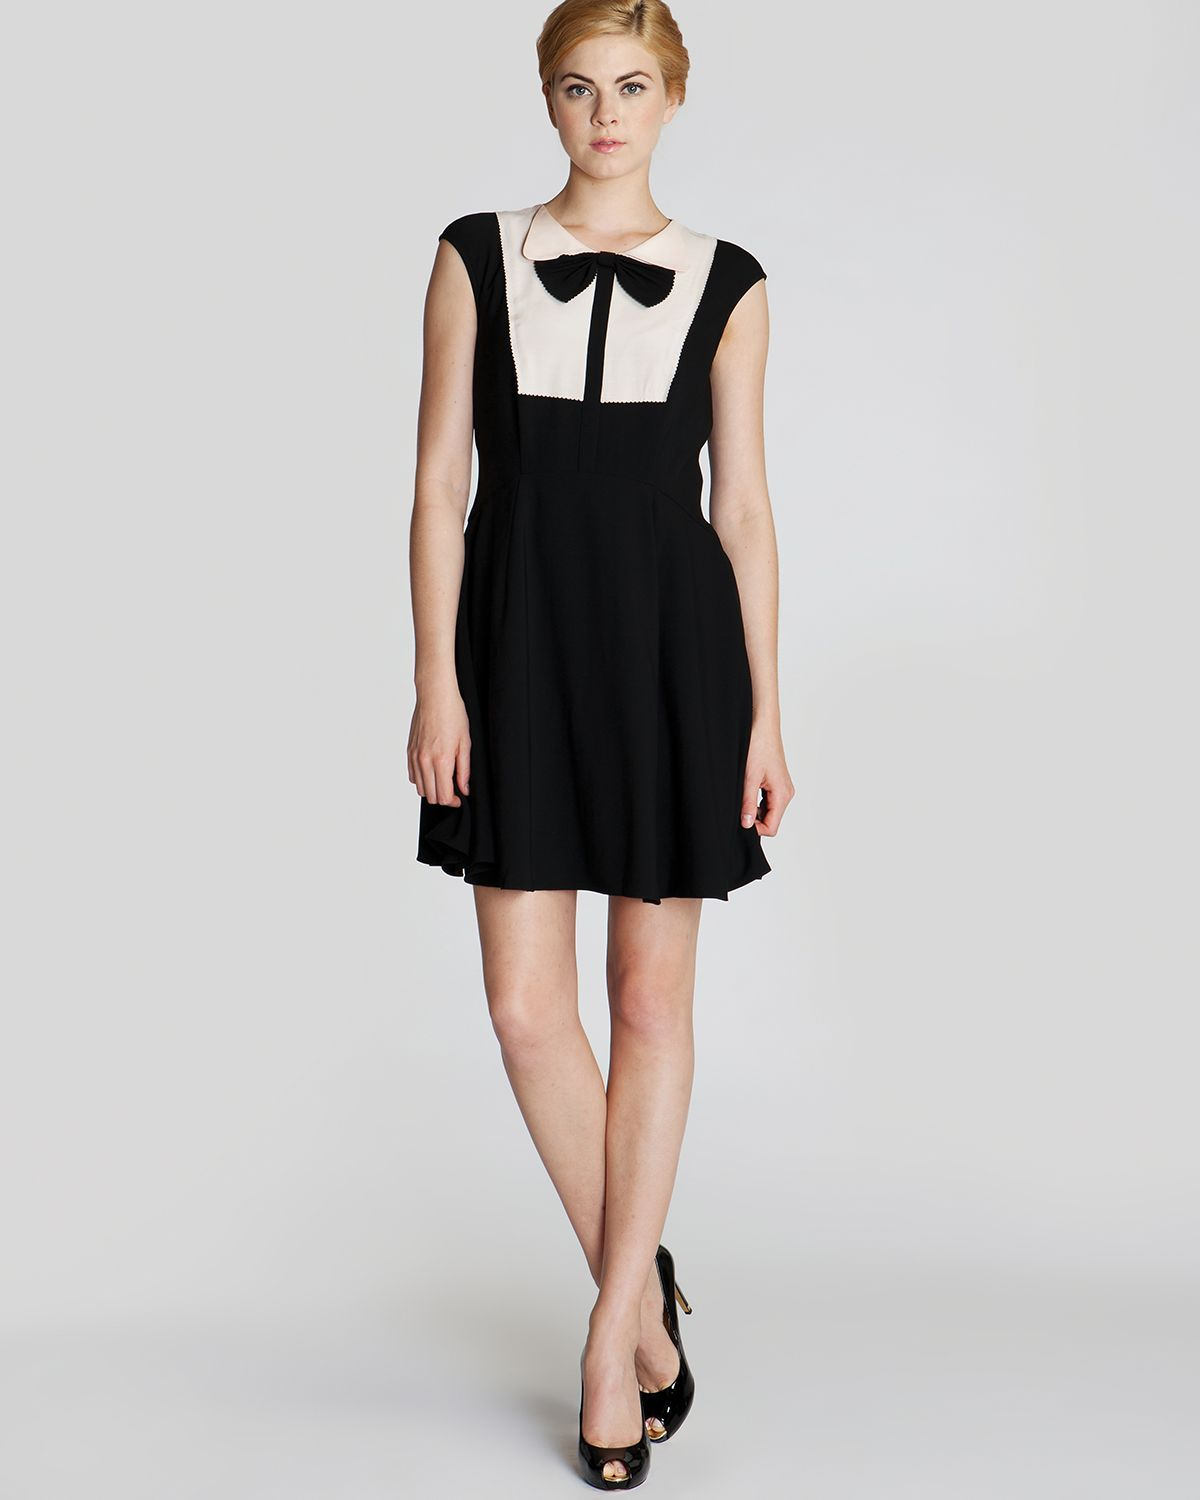 8417742b1a47 Ted Baker Black Dress White Bow – Little Black Dress